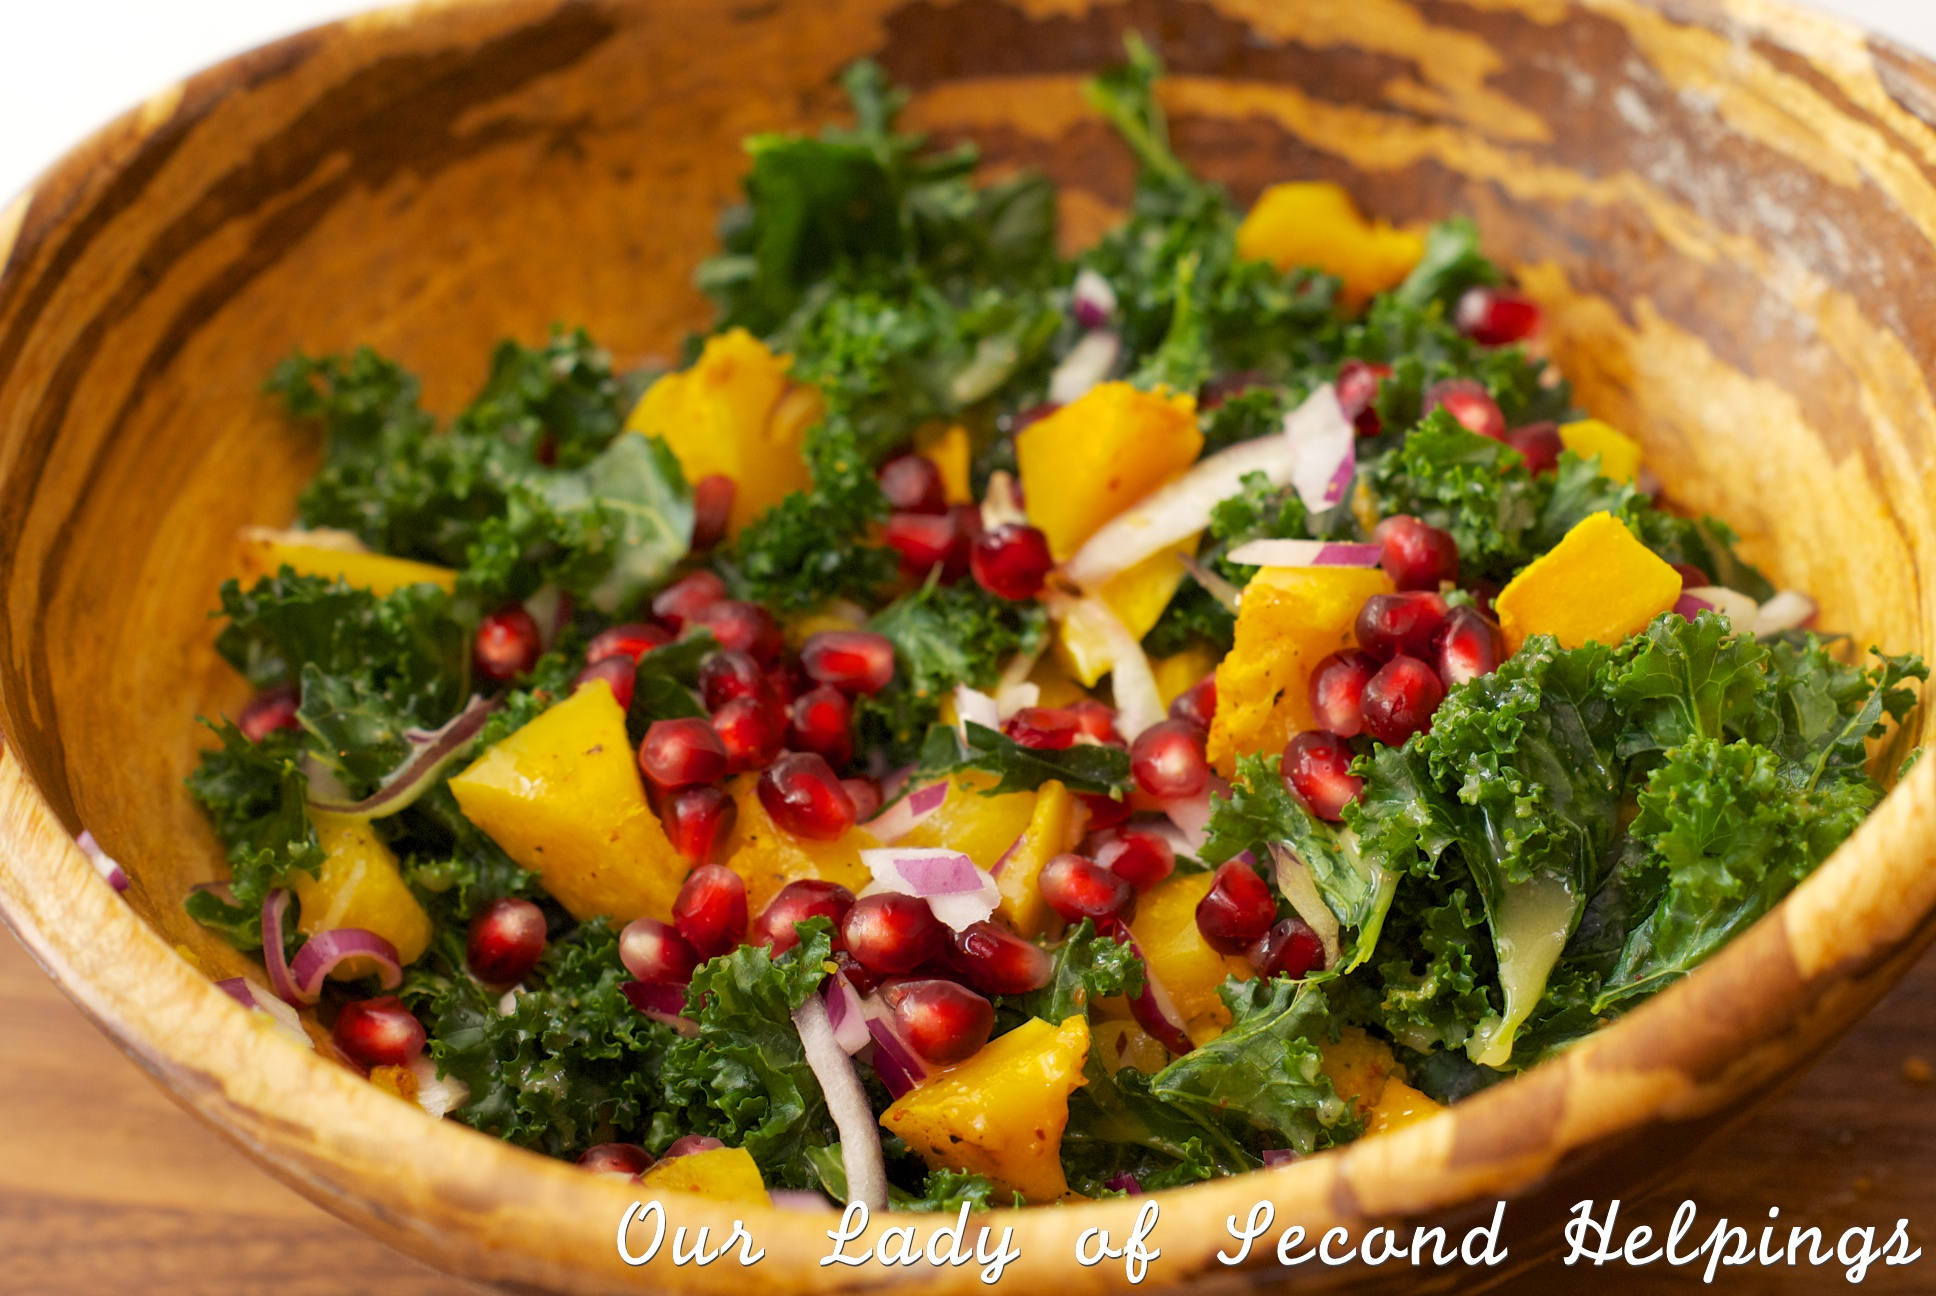 Salad with autumn vegetables and fruit